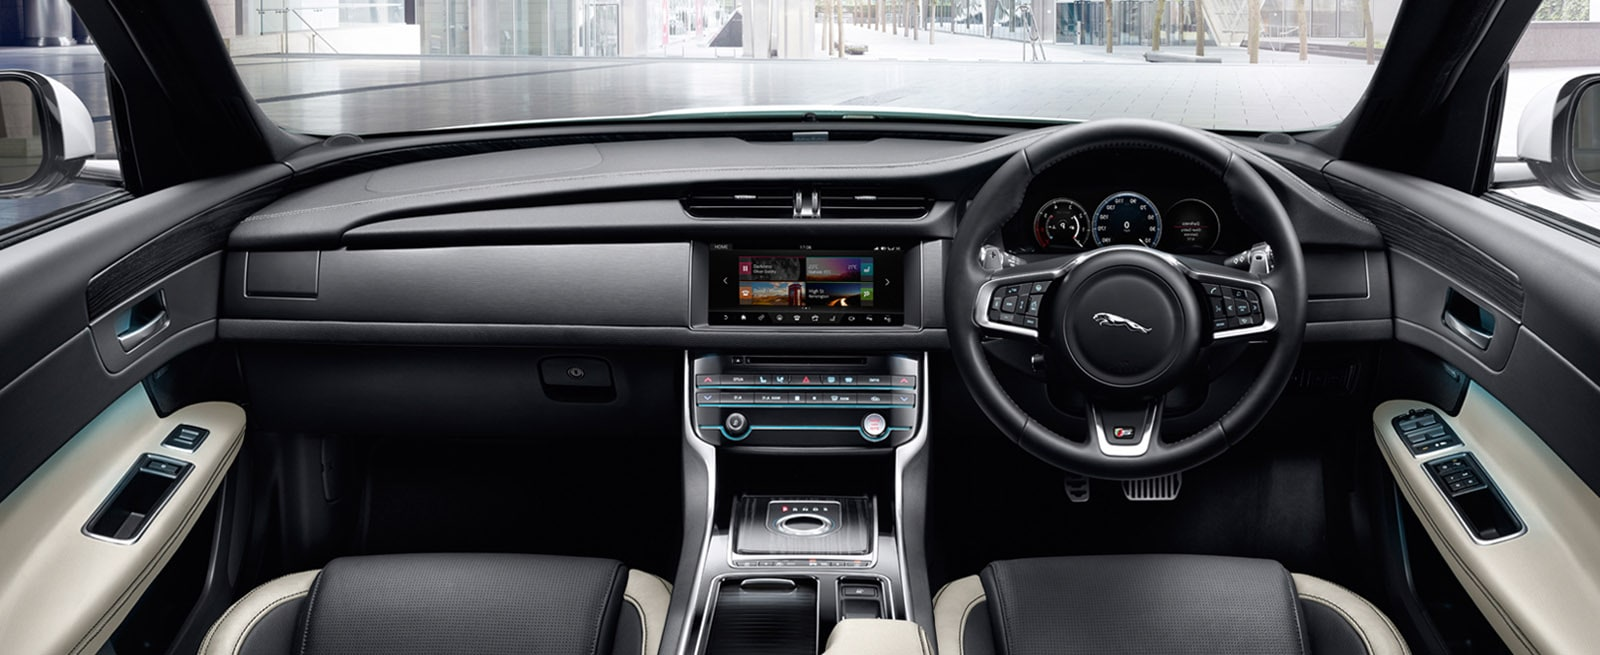 The Black and Cream Leather Interior of A Jaguar XF